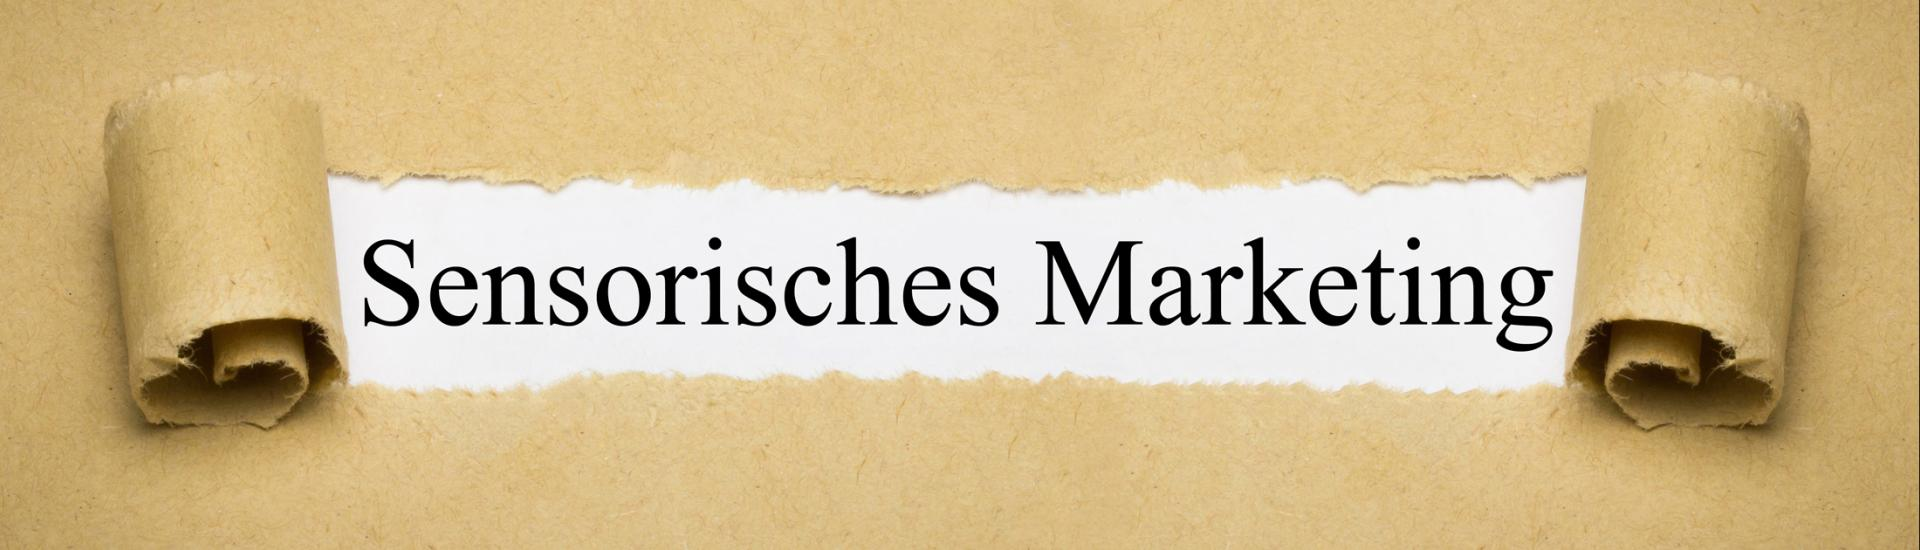 Sensorisches Marketing